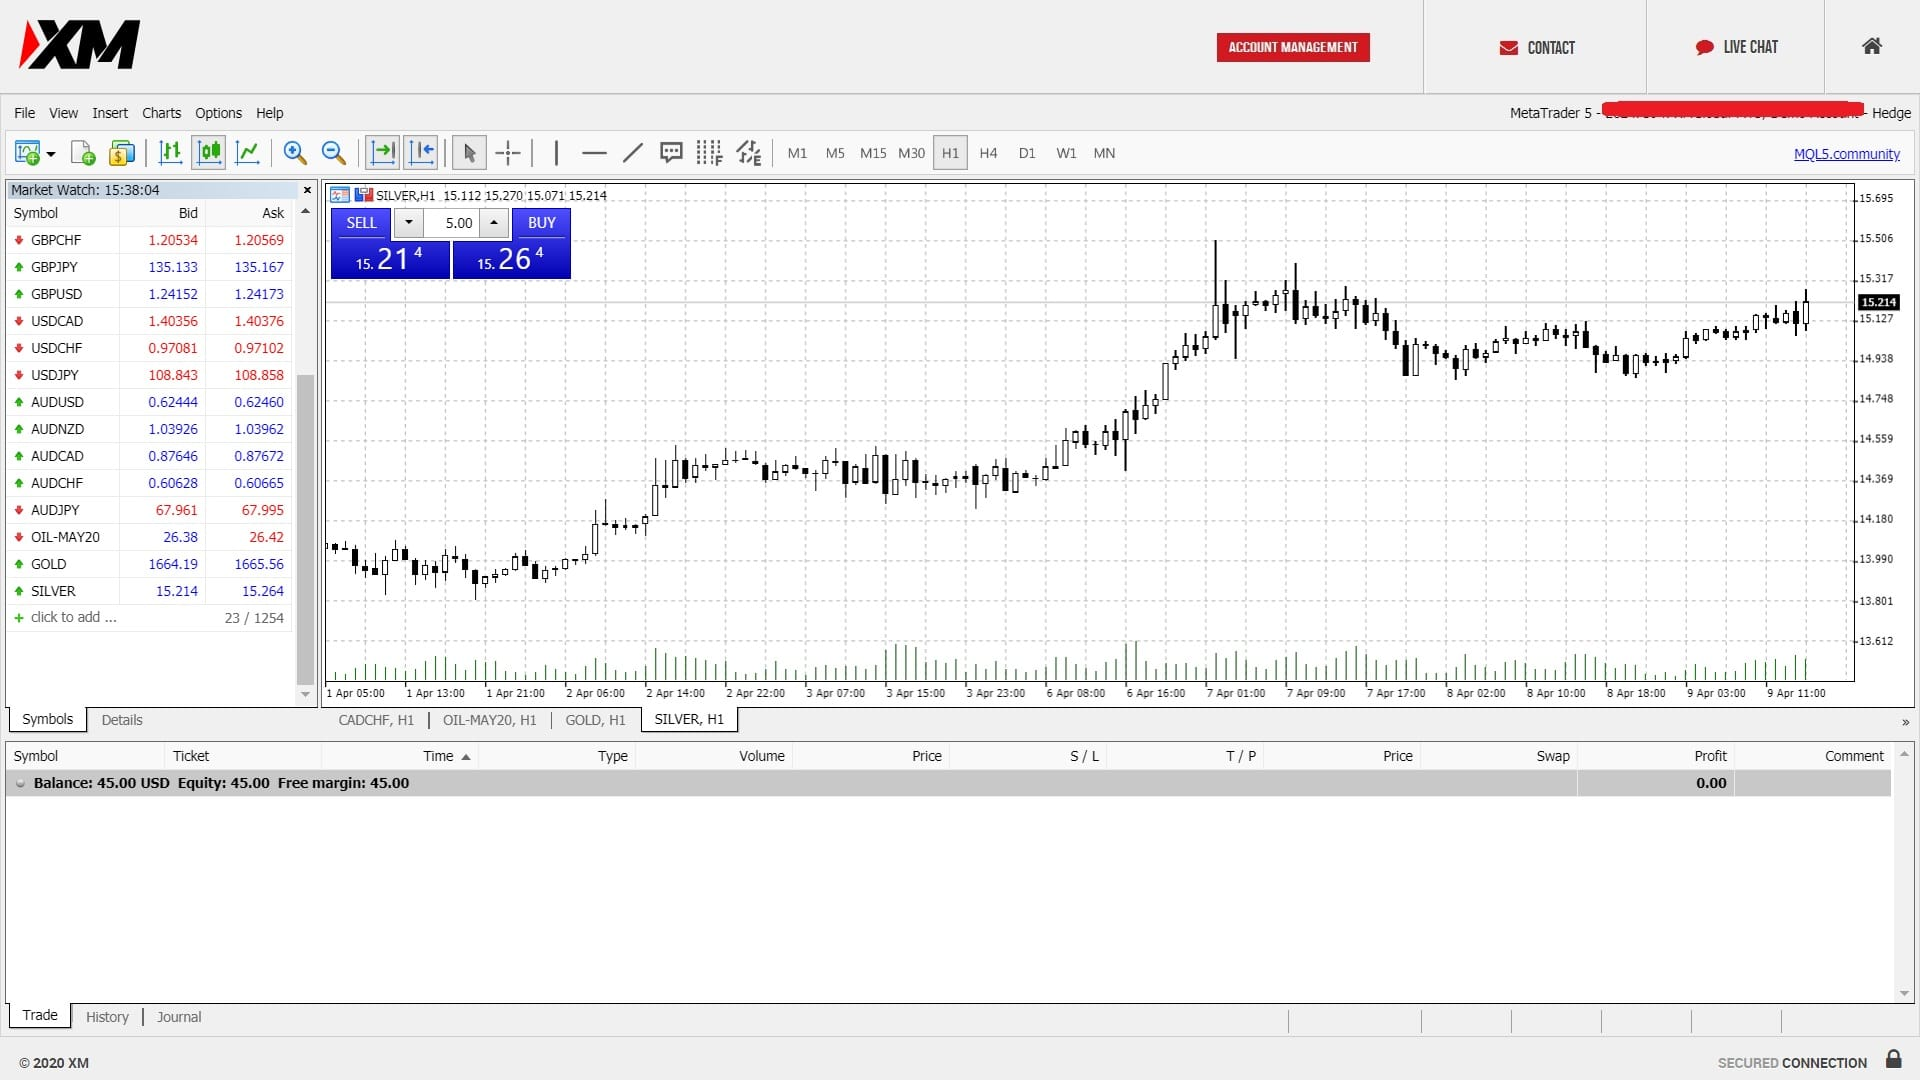 Silver trading on XM's MT5 platform